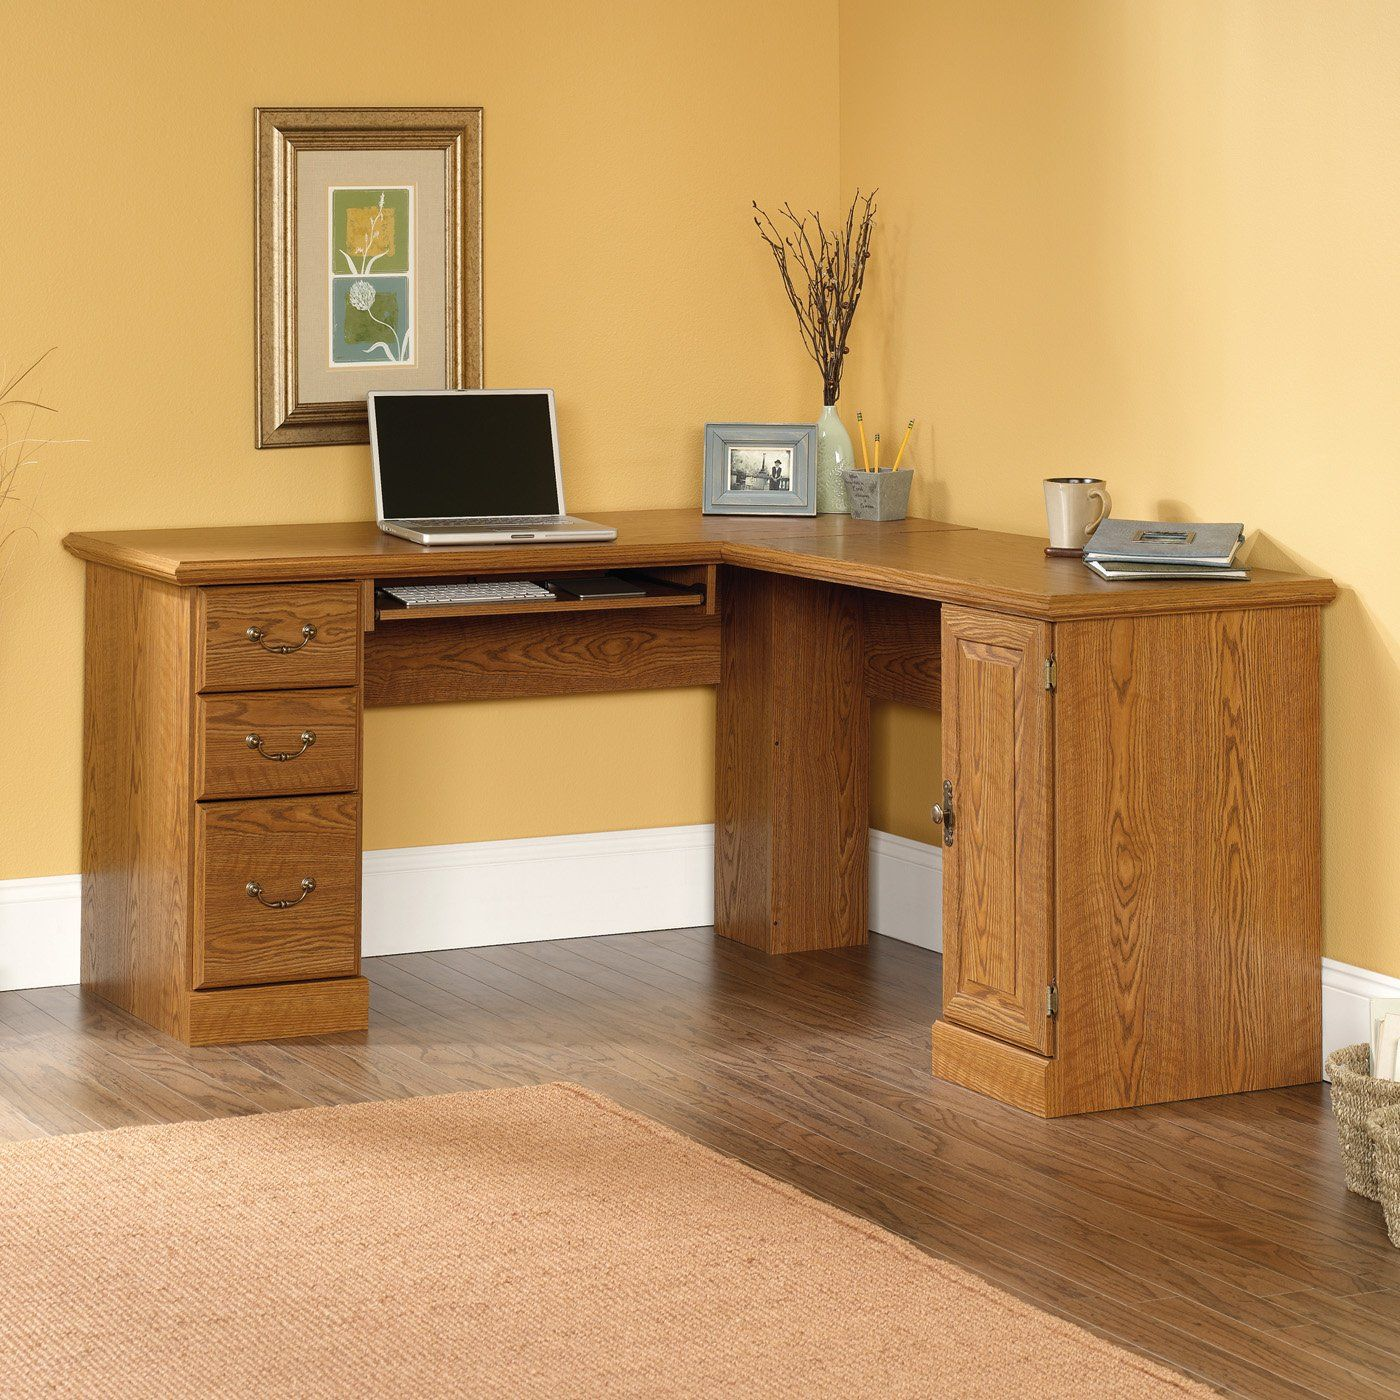 corner office furniture. Oak Corner Desks For Home Office - Furniture Set Check More At Http://michael-malarkey.com/oak-corner-desks-for-home-office/ I